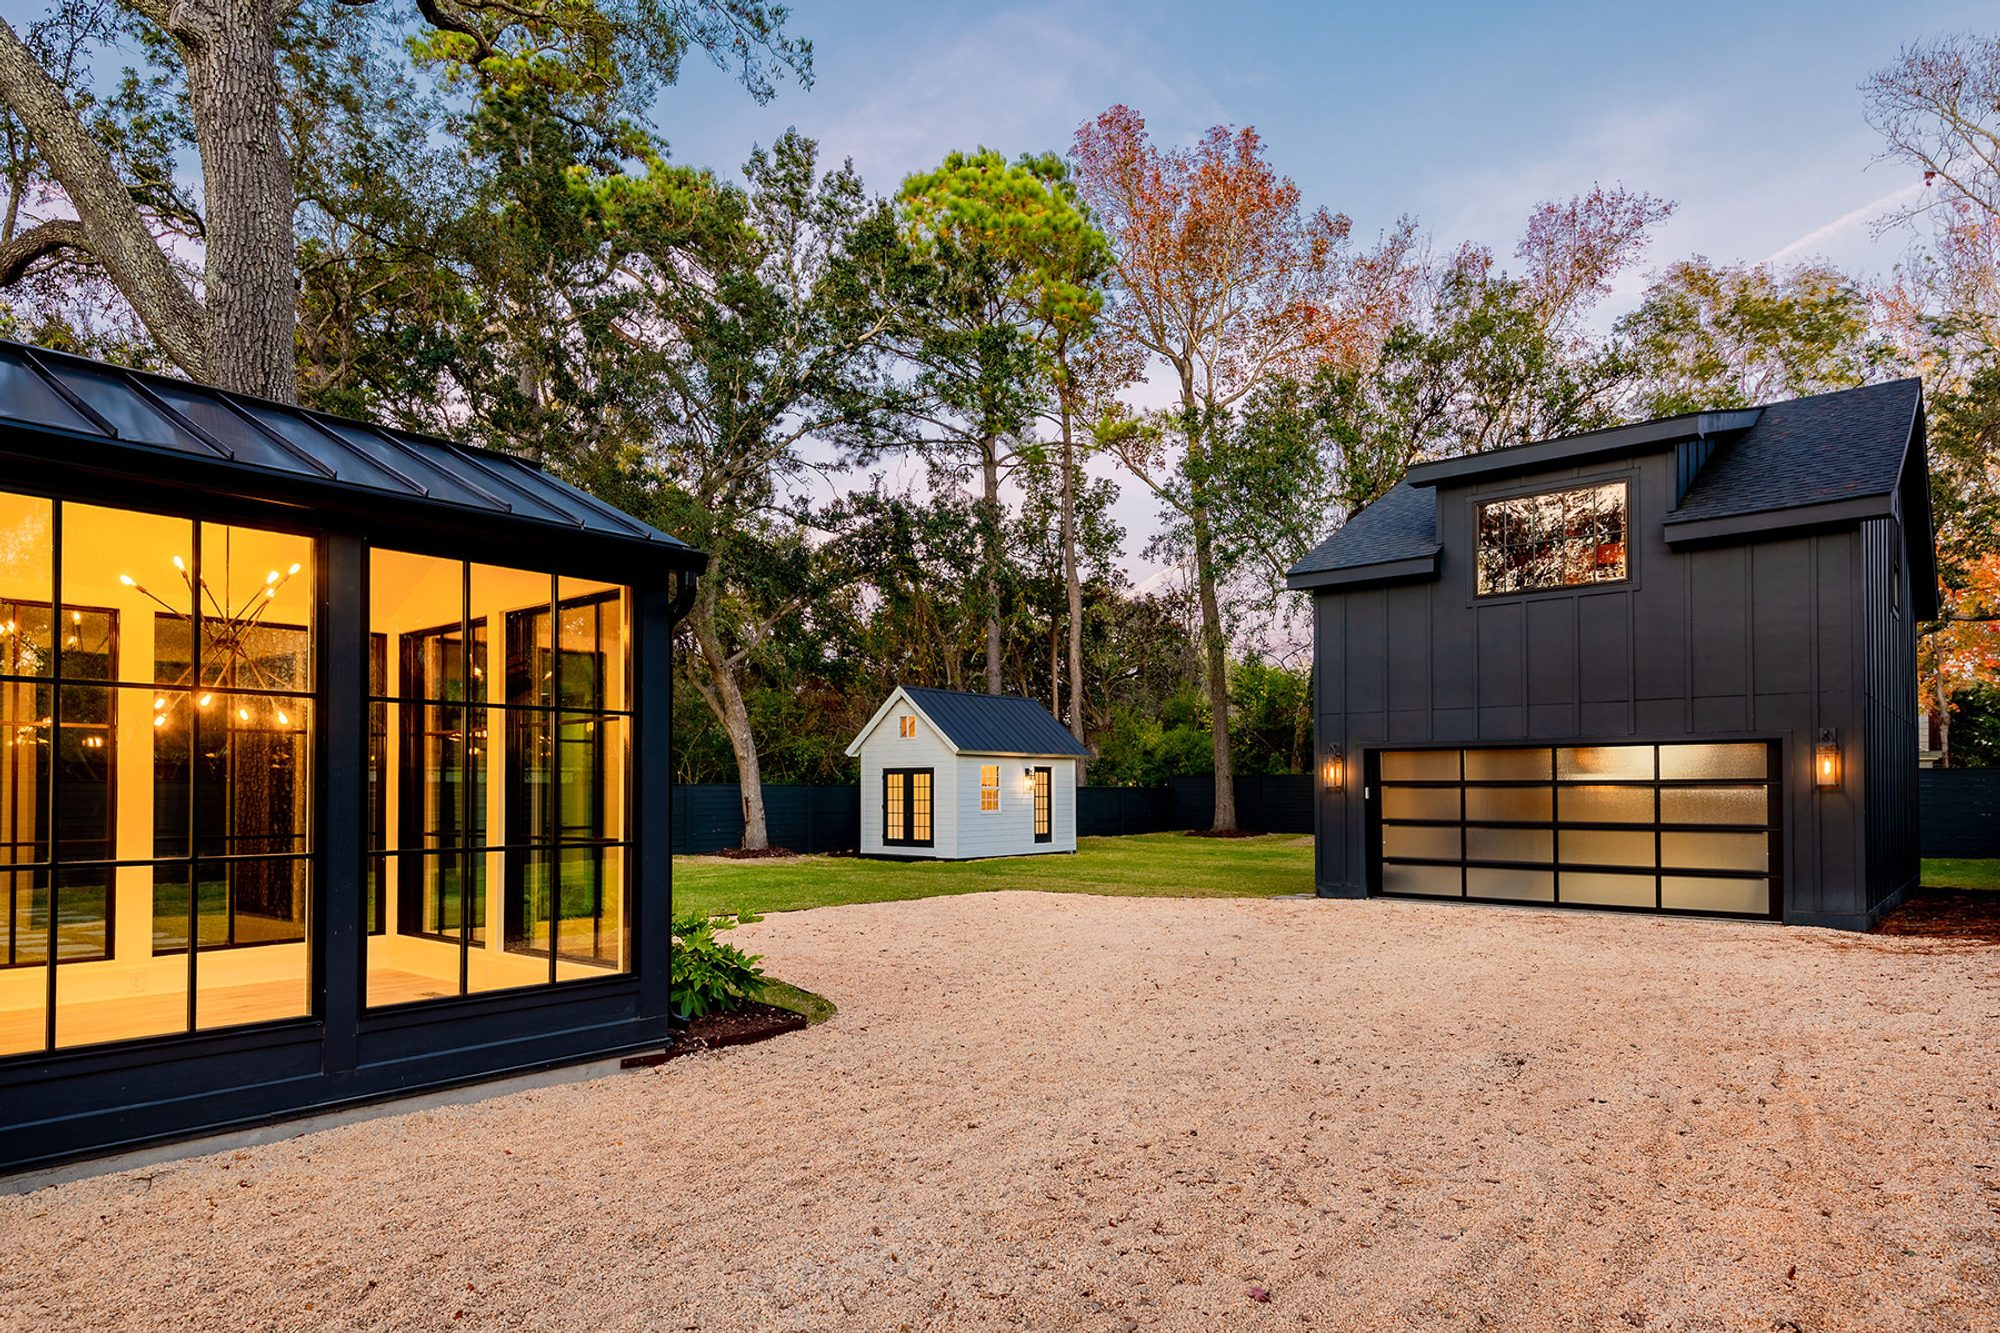 ultra modern black detached garage with large double door and 2nd floor living space